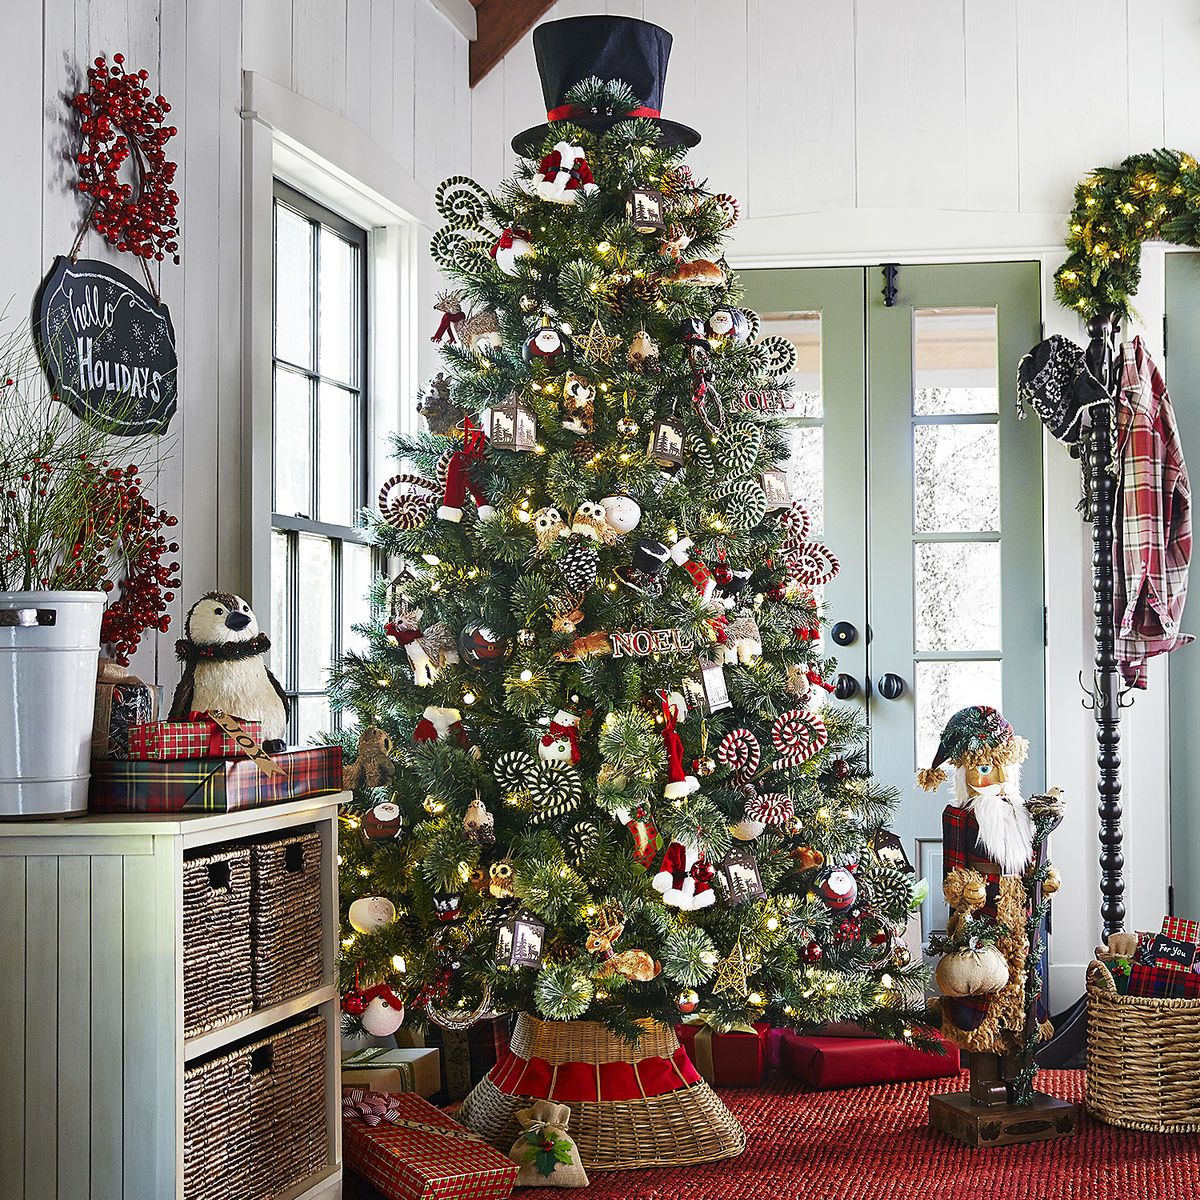 Plaid Tidings Christmas Tree - 9'